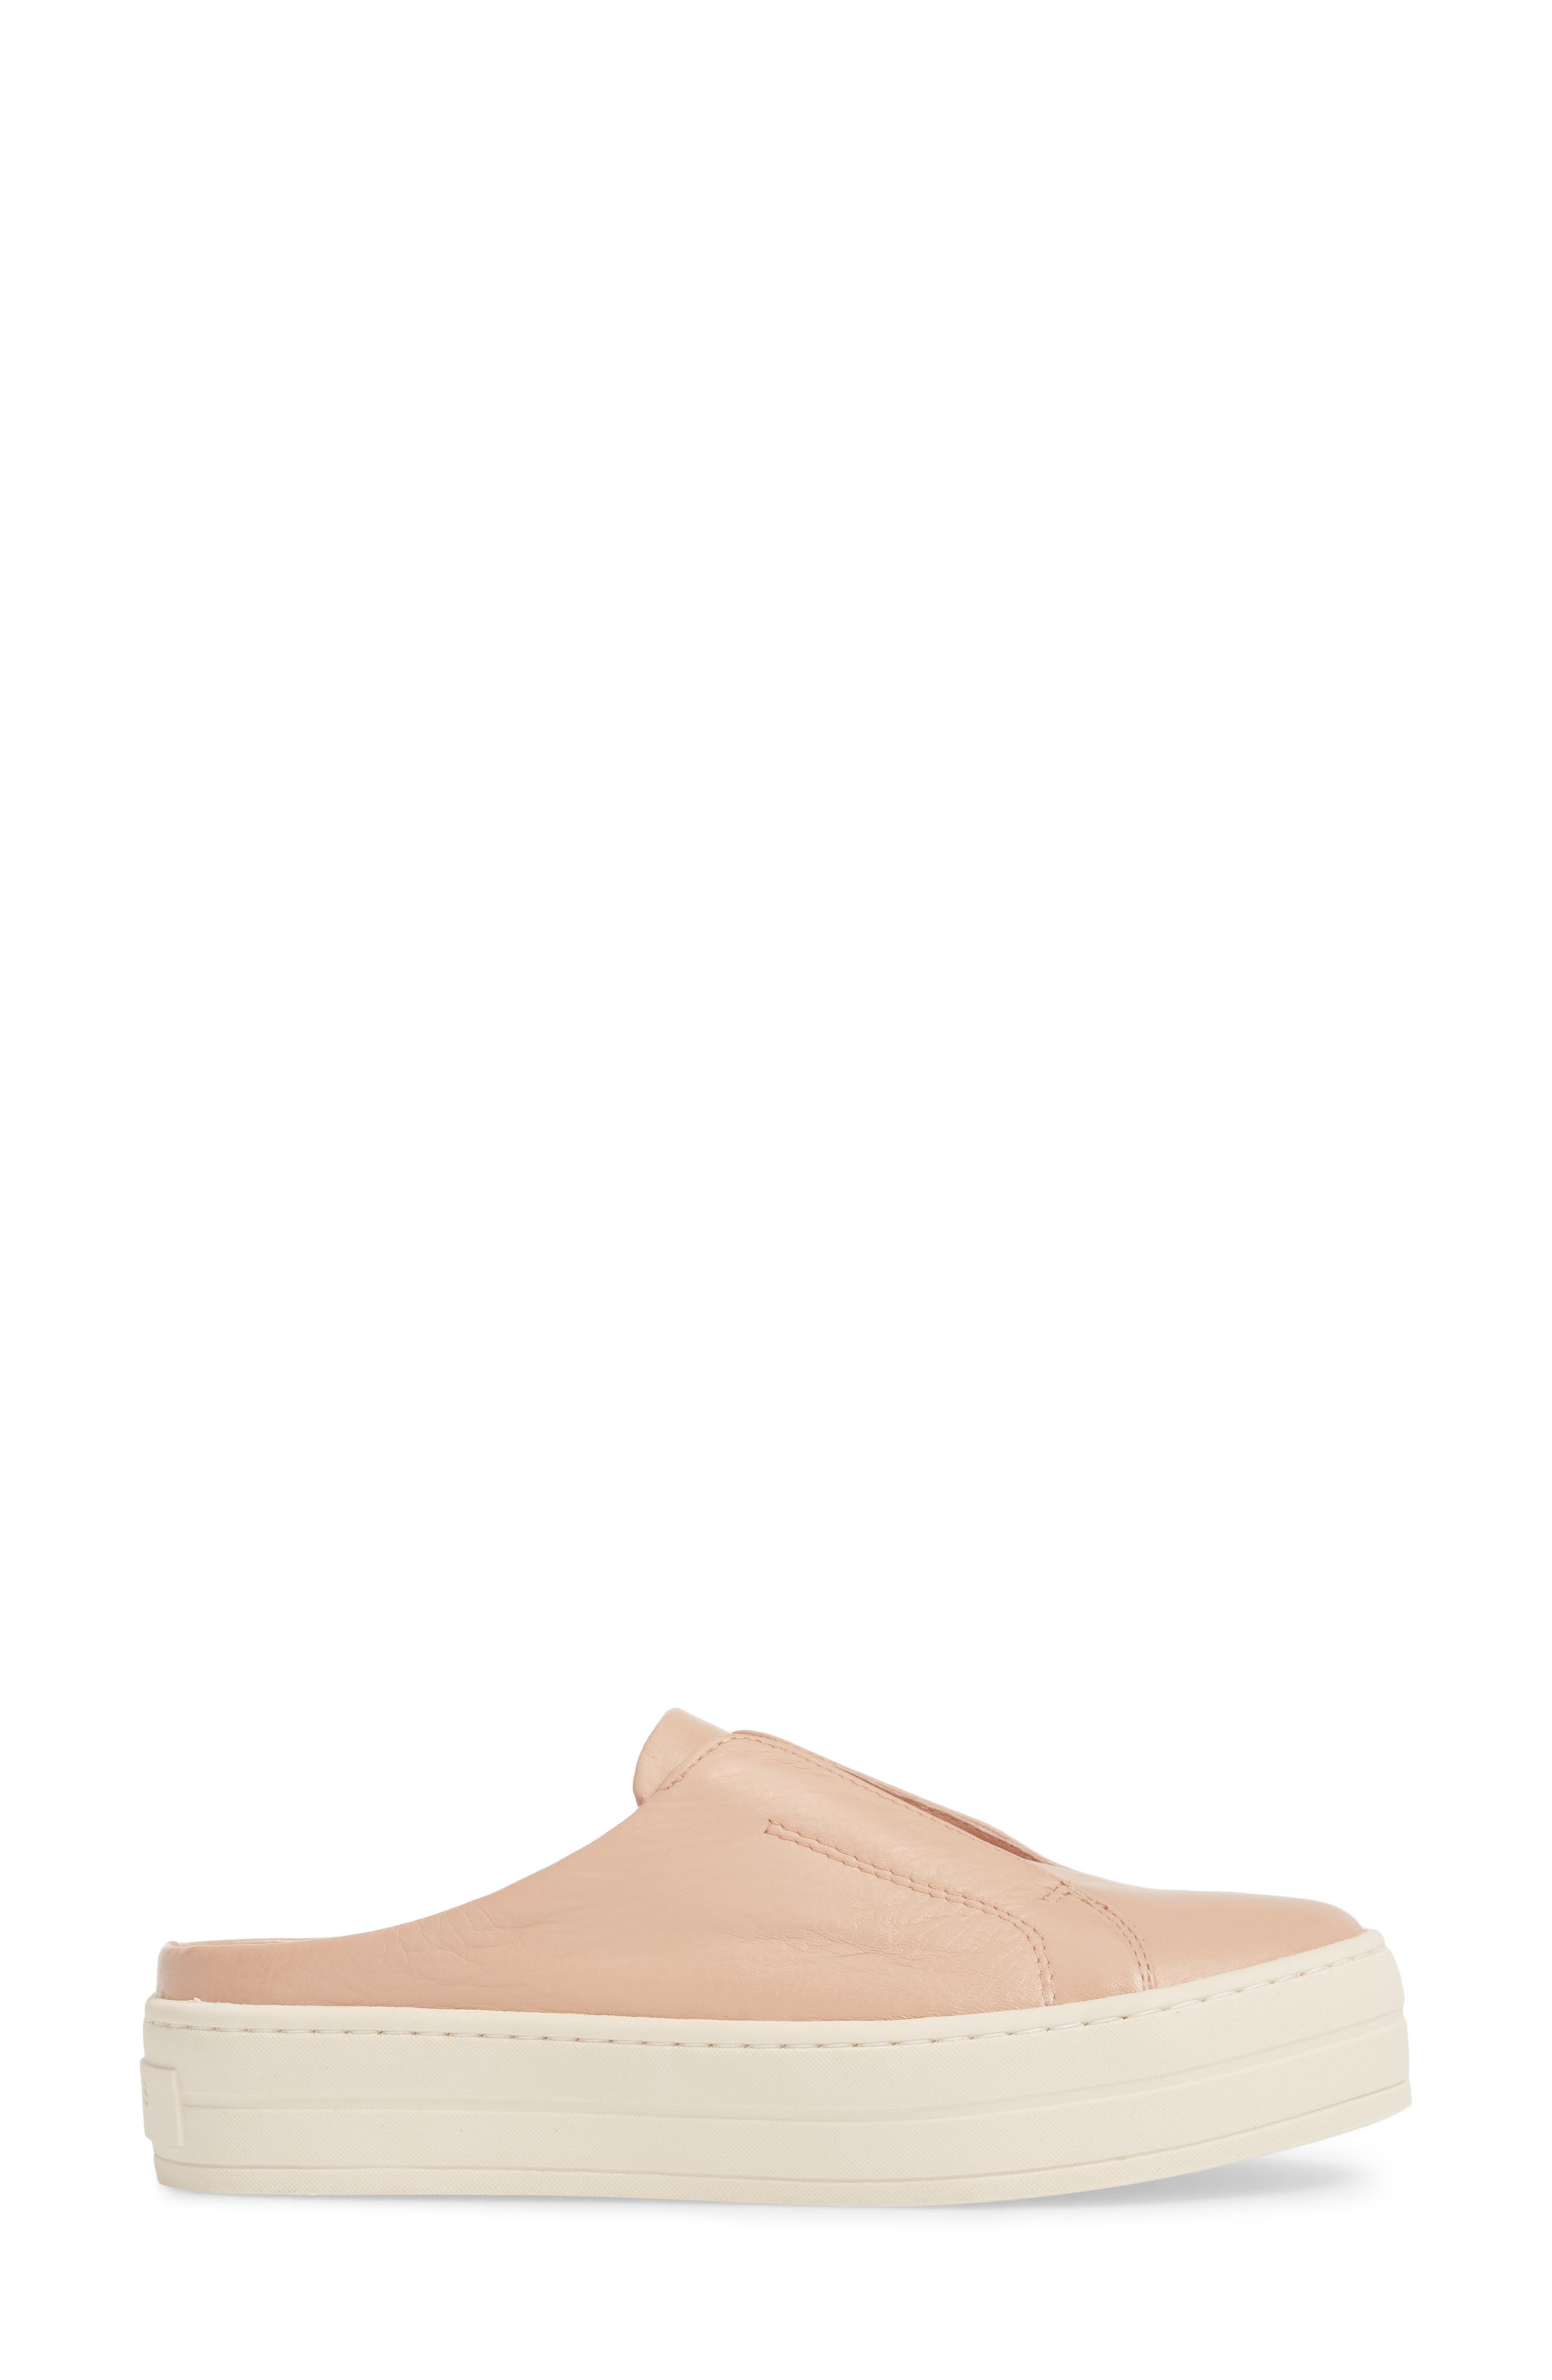 Hara Sneaker Mule,                             Alternate thumbnail 3, color,                             BLUSH SUEDE